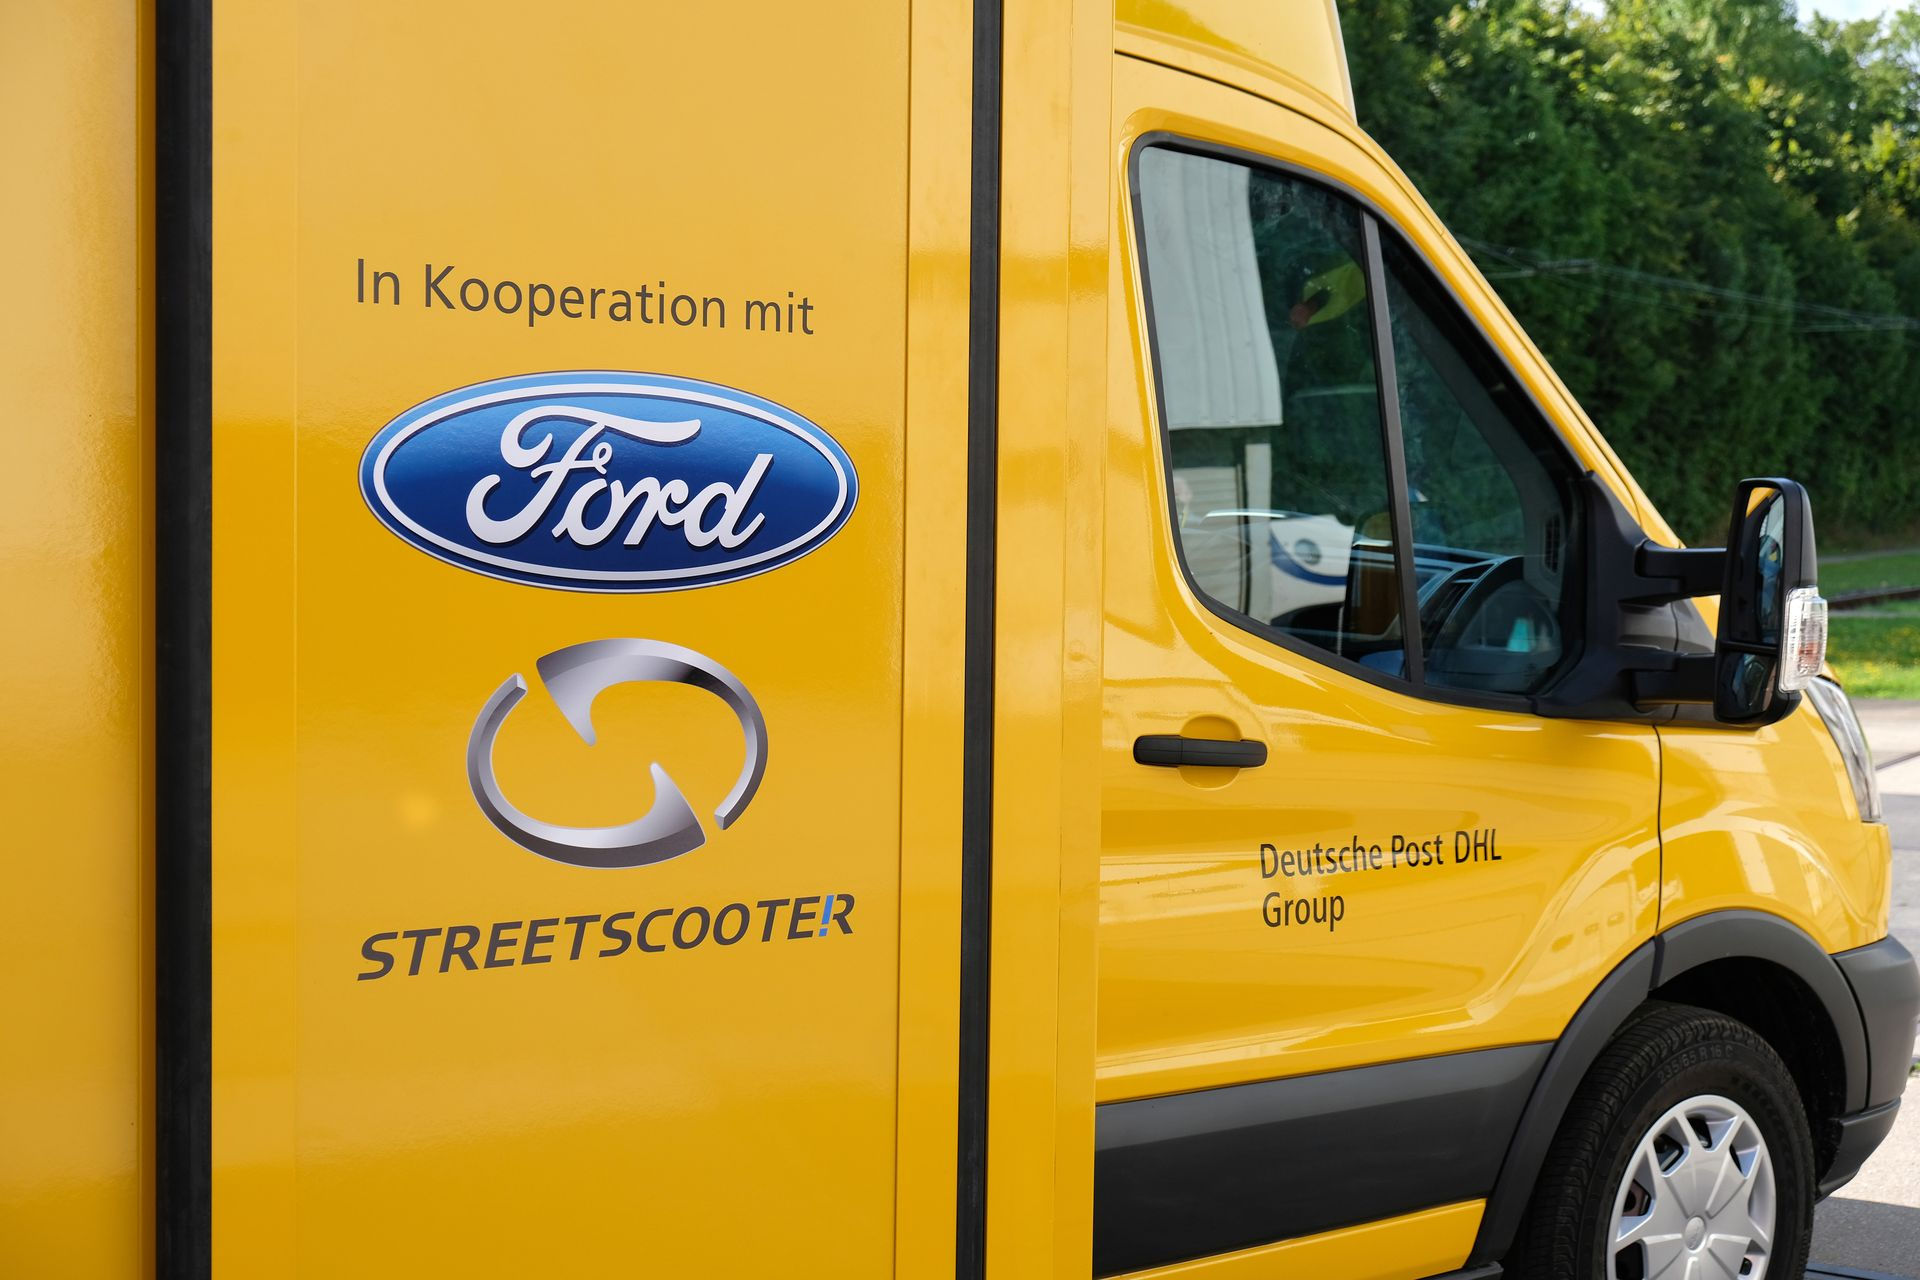 Deutsche Post DHL Group and Ford Unveil the Early Build StreetSc